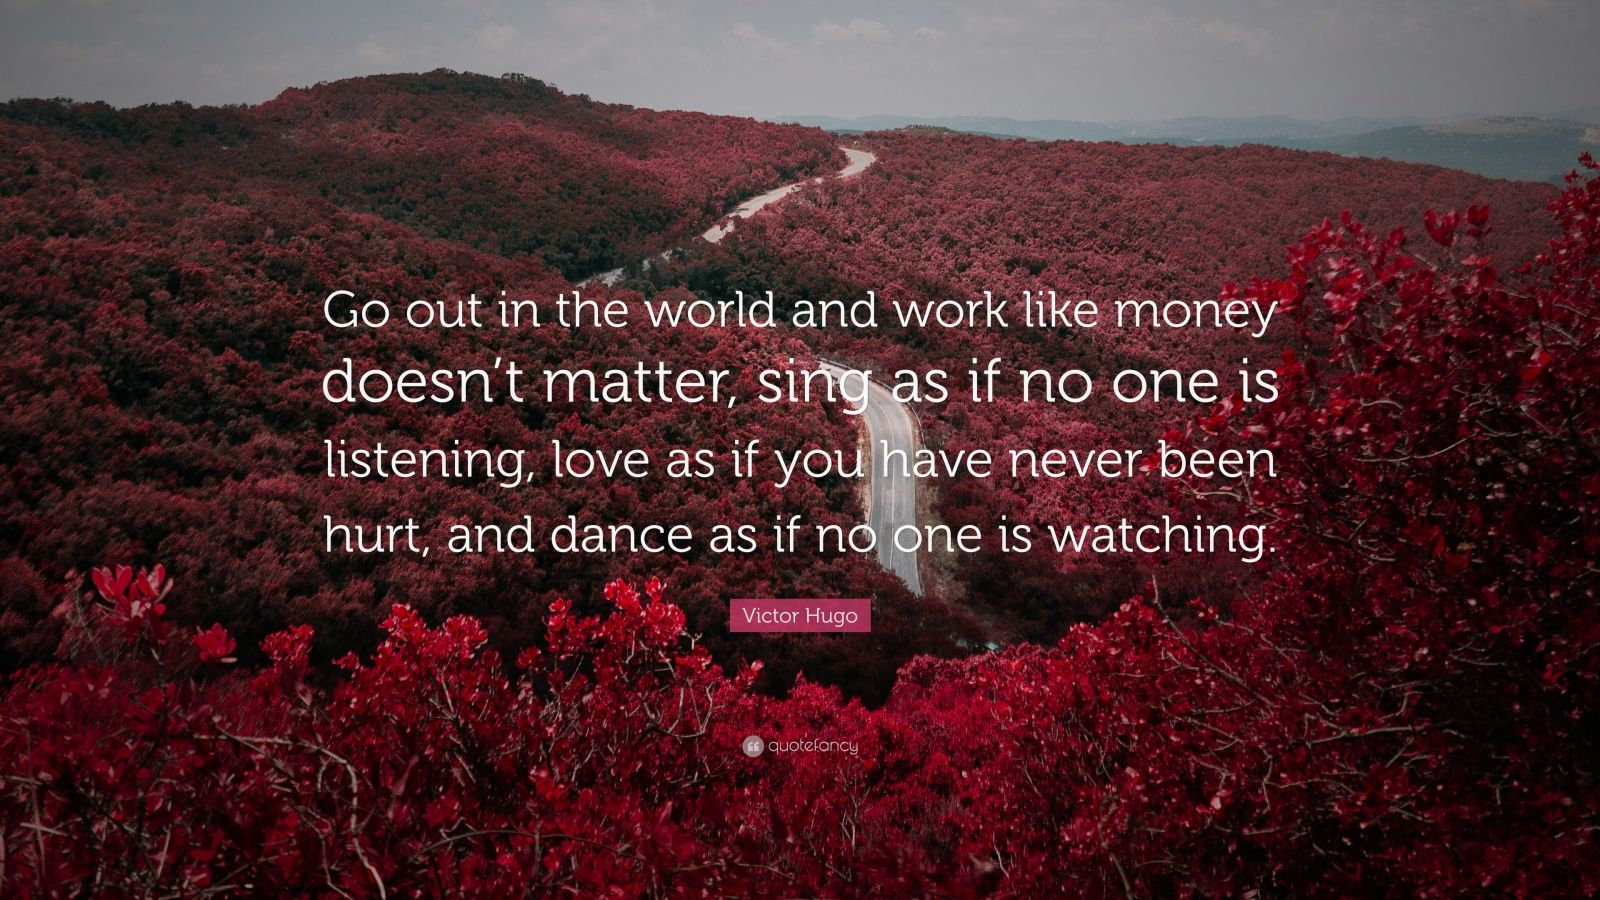 """Victor Hugo Quote: """"Go out in the world and work like money doesn't matter, sing as if no one is listening, love as if you have never been hurt, and dance as if no one is watching."""""""